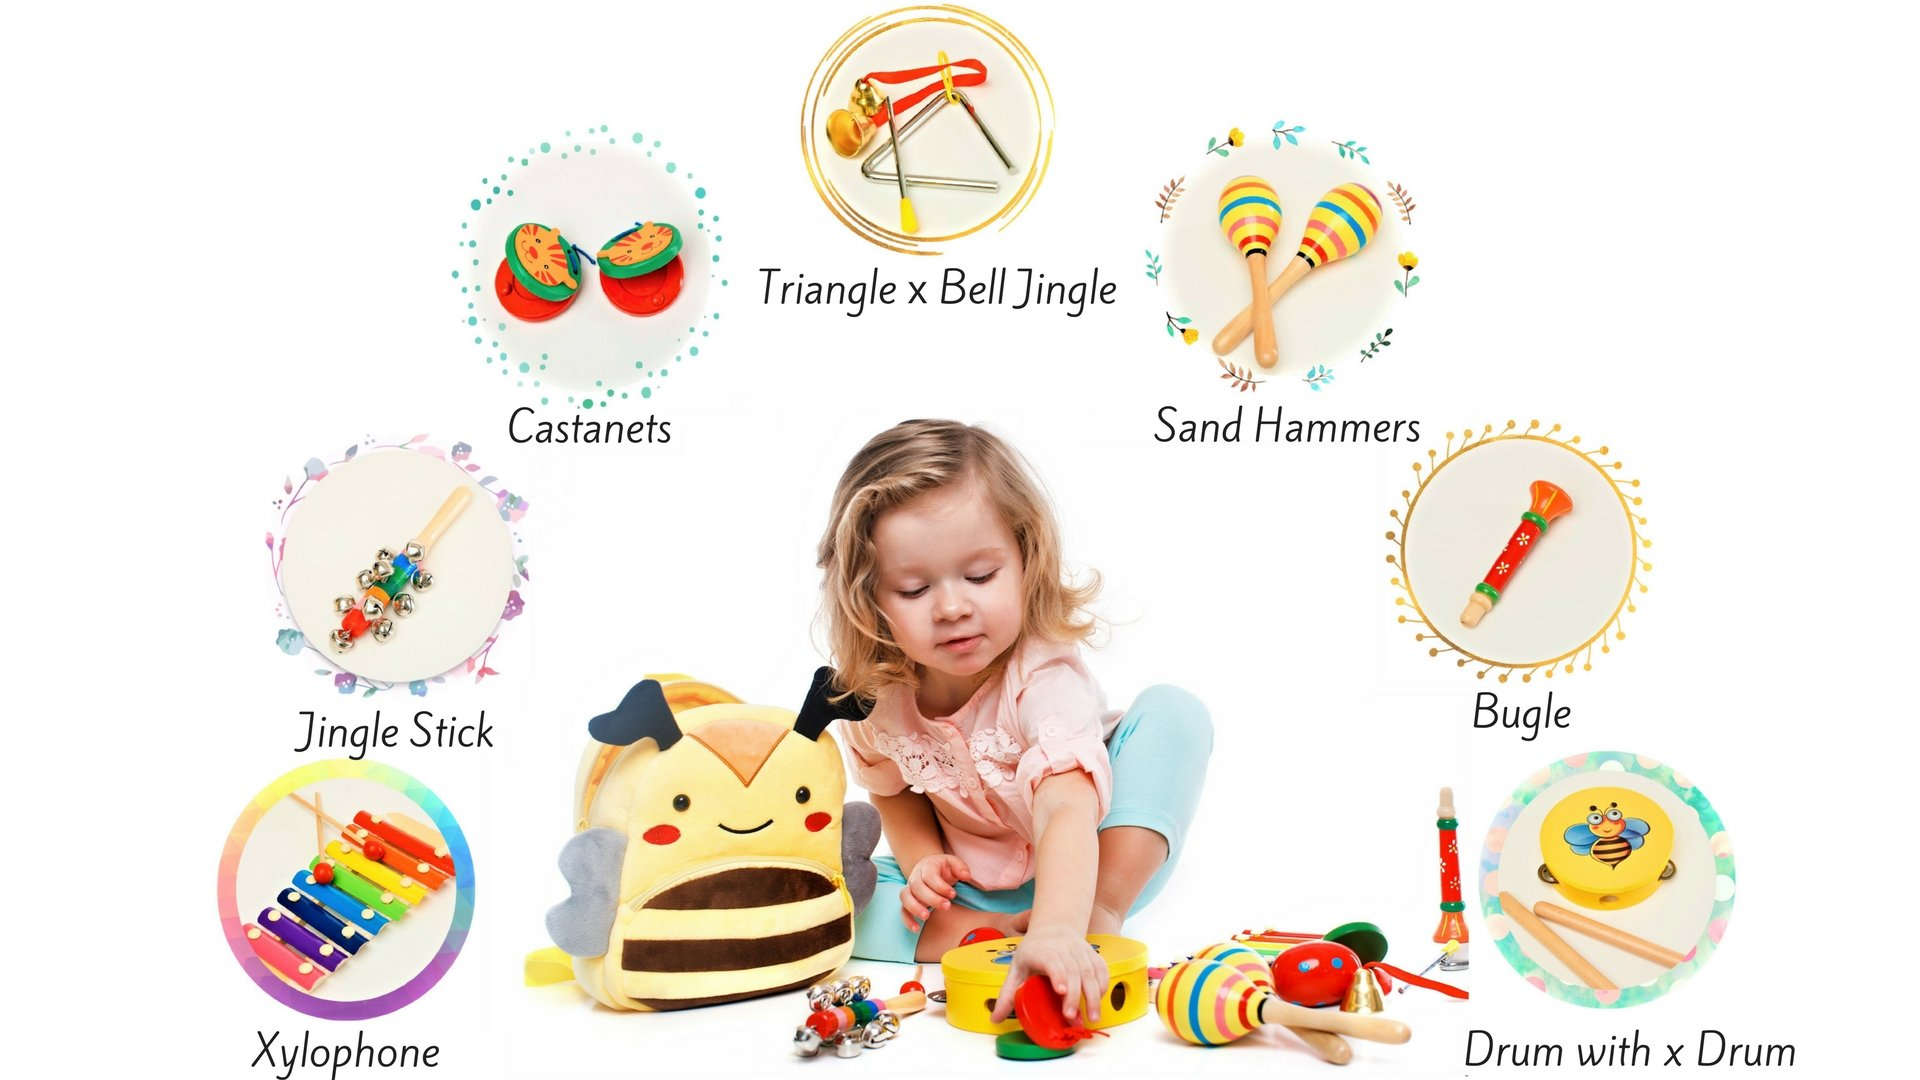 Musical Toys - Musical Instrument - Music Set - Baby Musical Instruments - Music Toys - Musical Toys for Girls & Boys - Musical Play Set - Premium Gift Musical Set 17Pcs with Cute Carrying Bee Bag by Sabuzza Toys